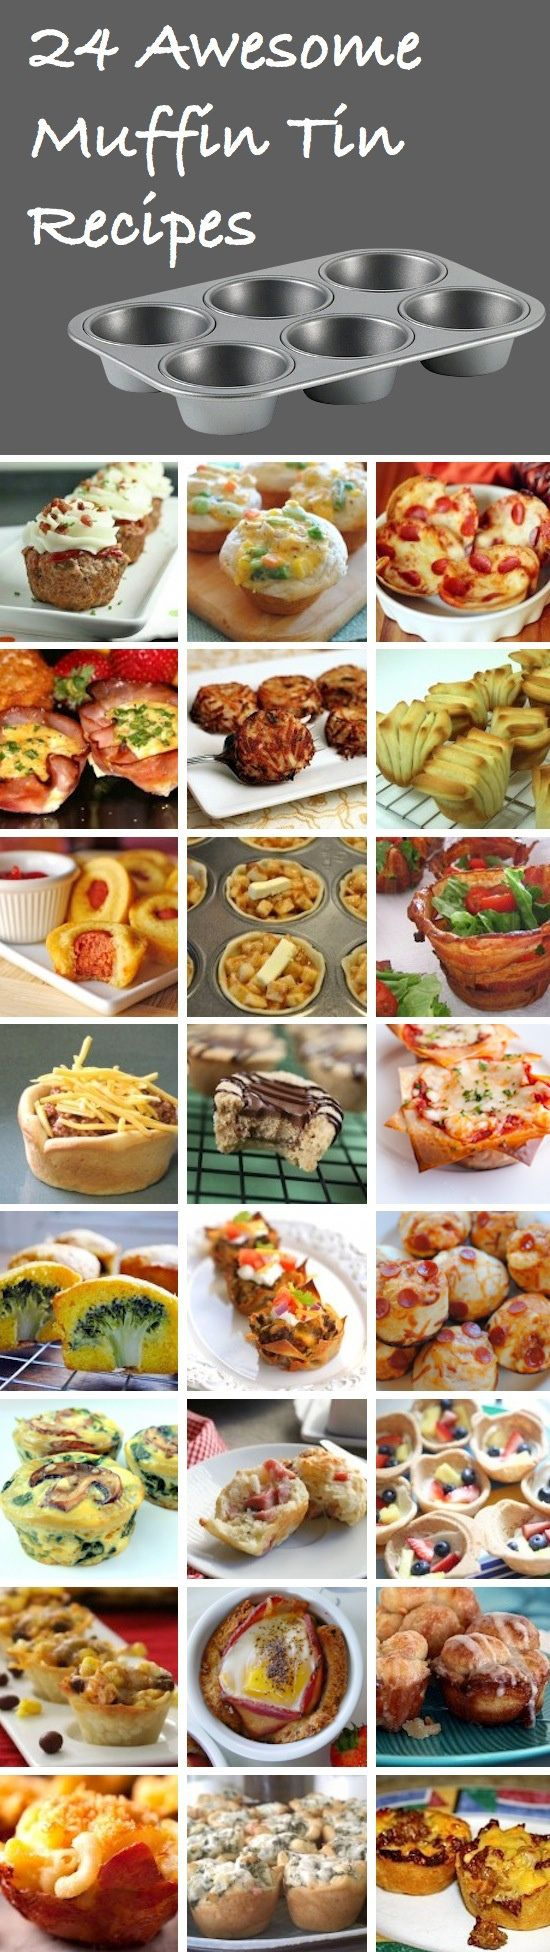 Muffin Tin recipes (click on the link at the top for recipes)